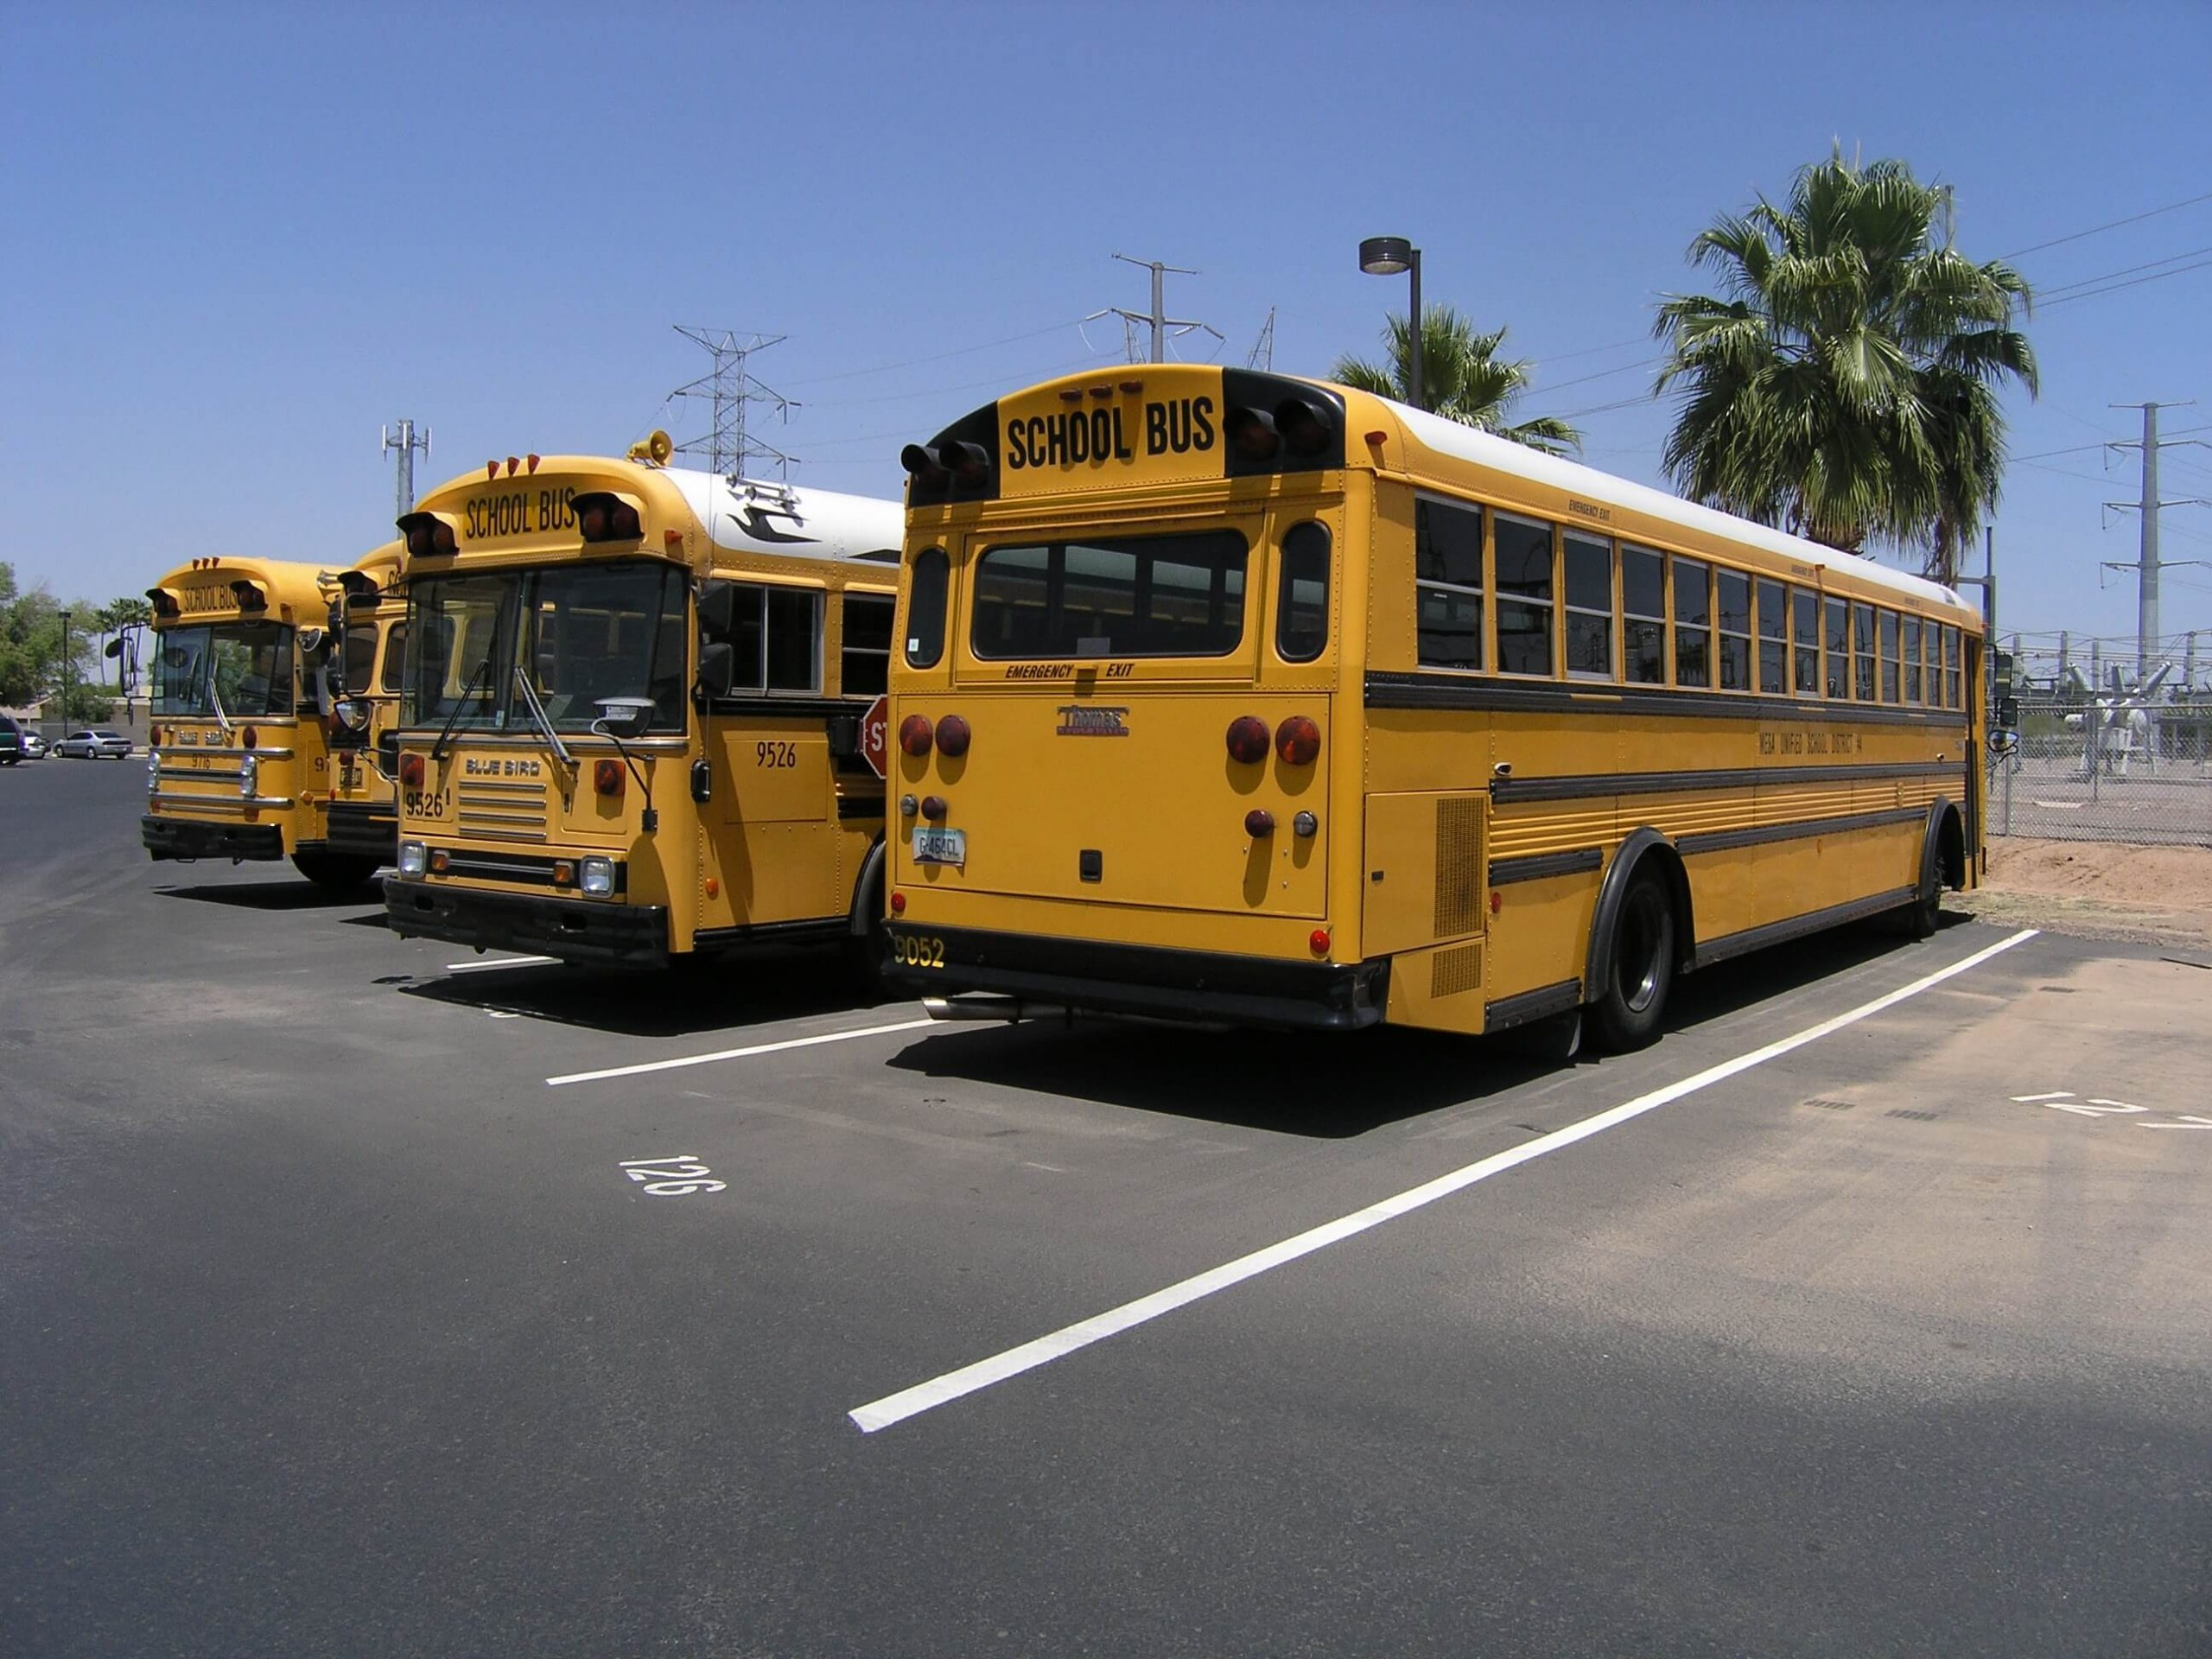 School Buses as the Largest Transit System in the US